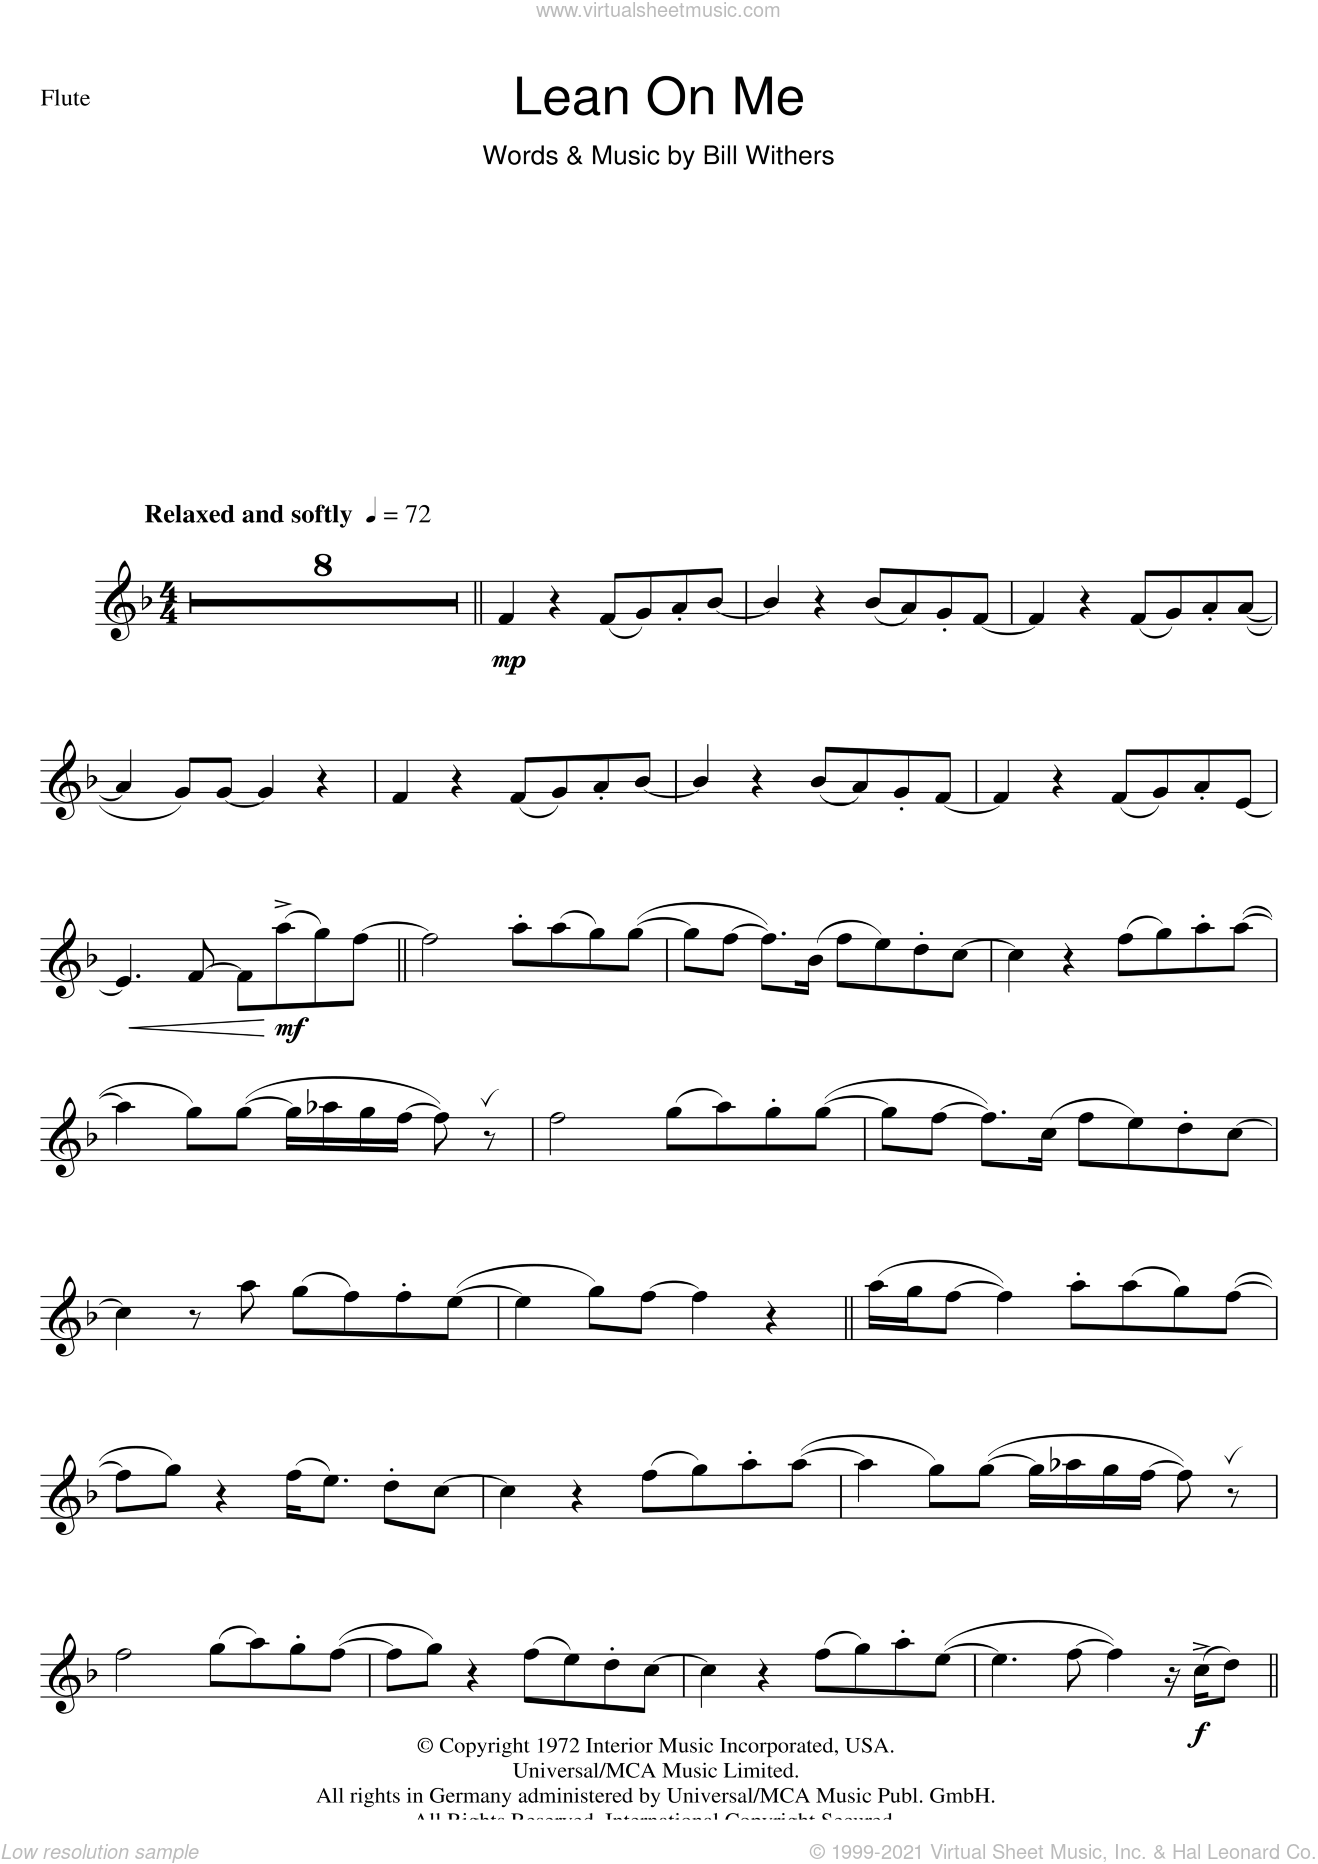 Lean On Me sheet music for flute solo by Bill Withers, intermediate skill level